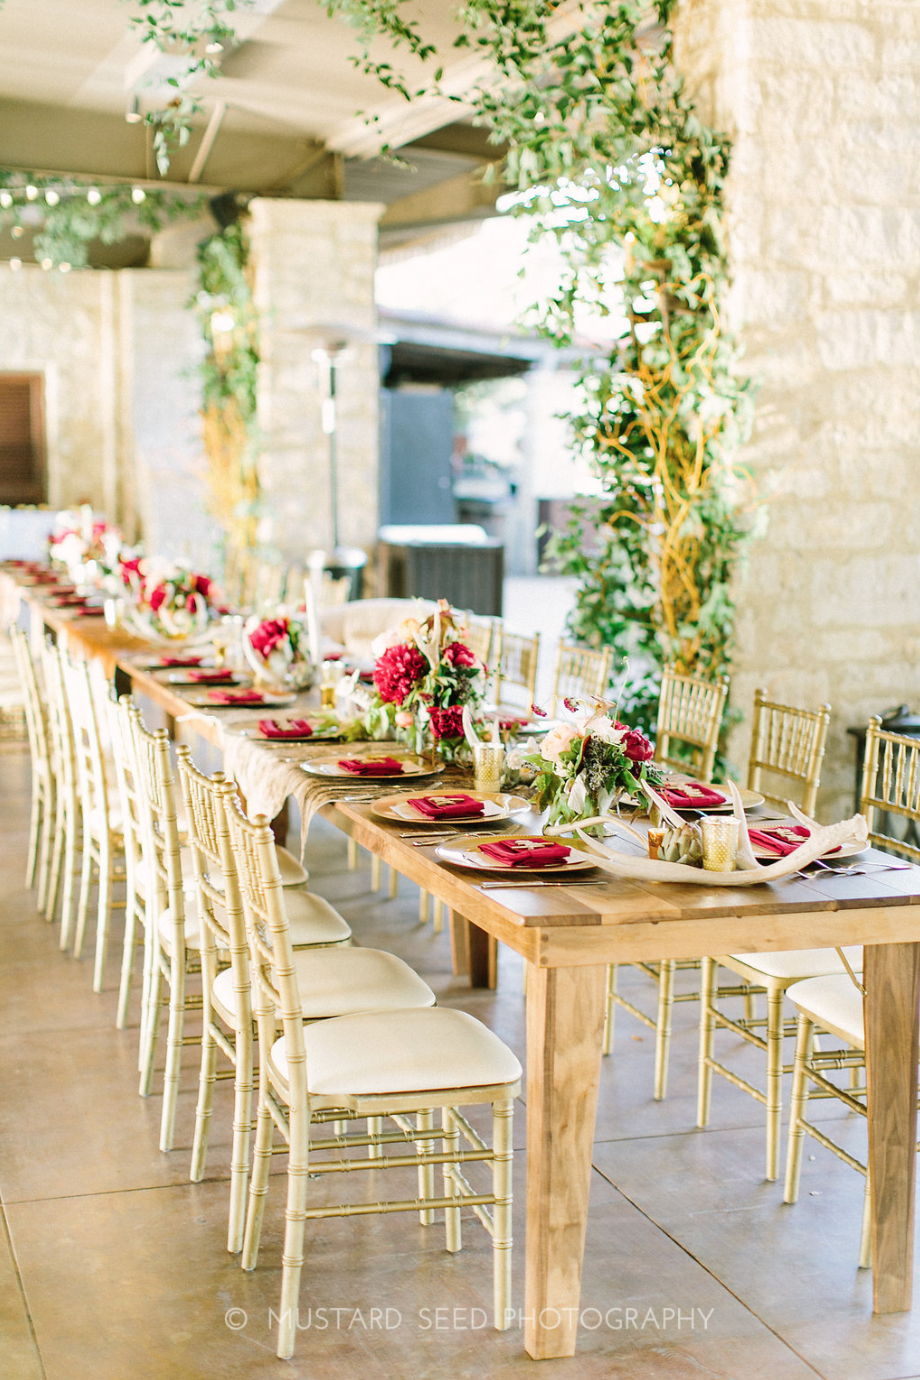 Wooden Head Table with floral arrangements and greenery